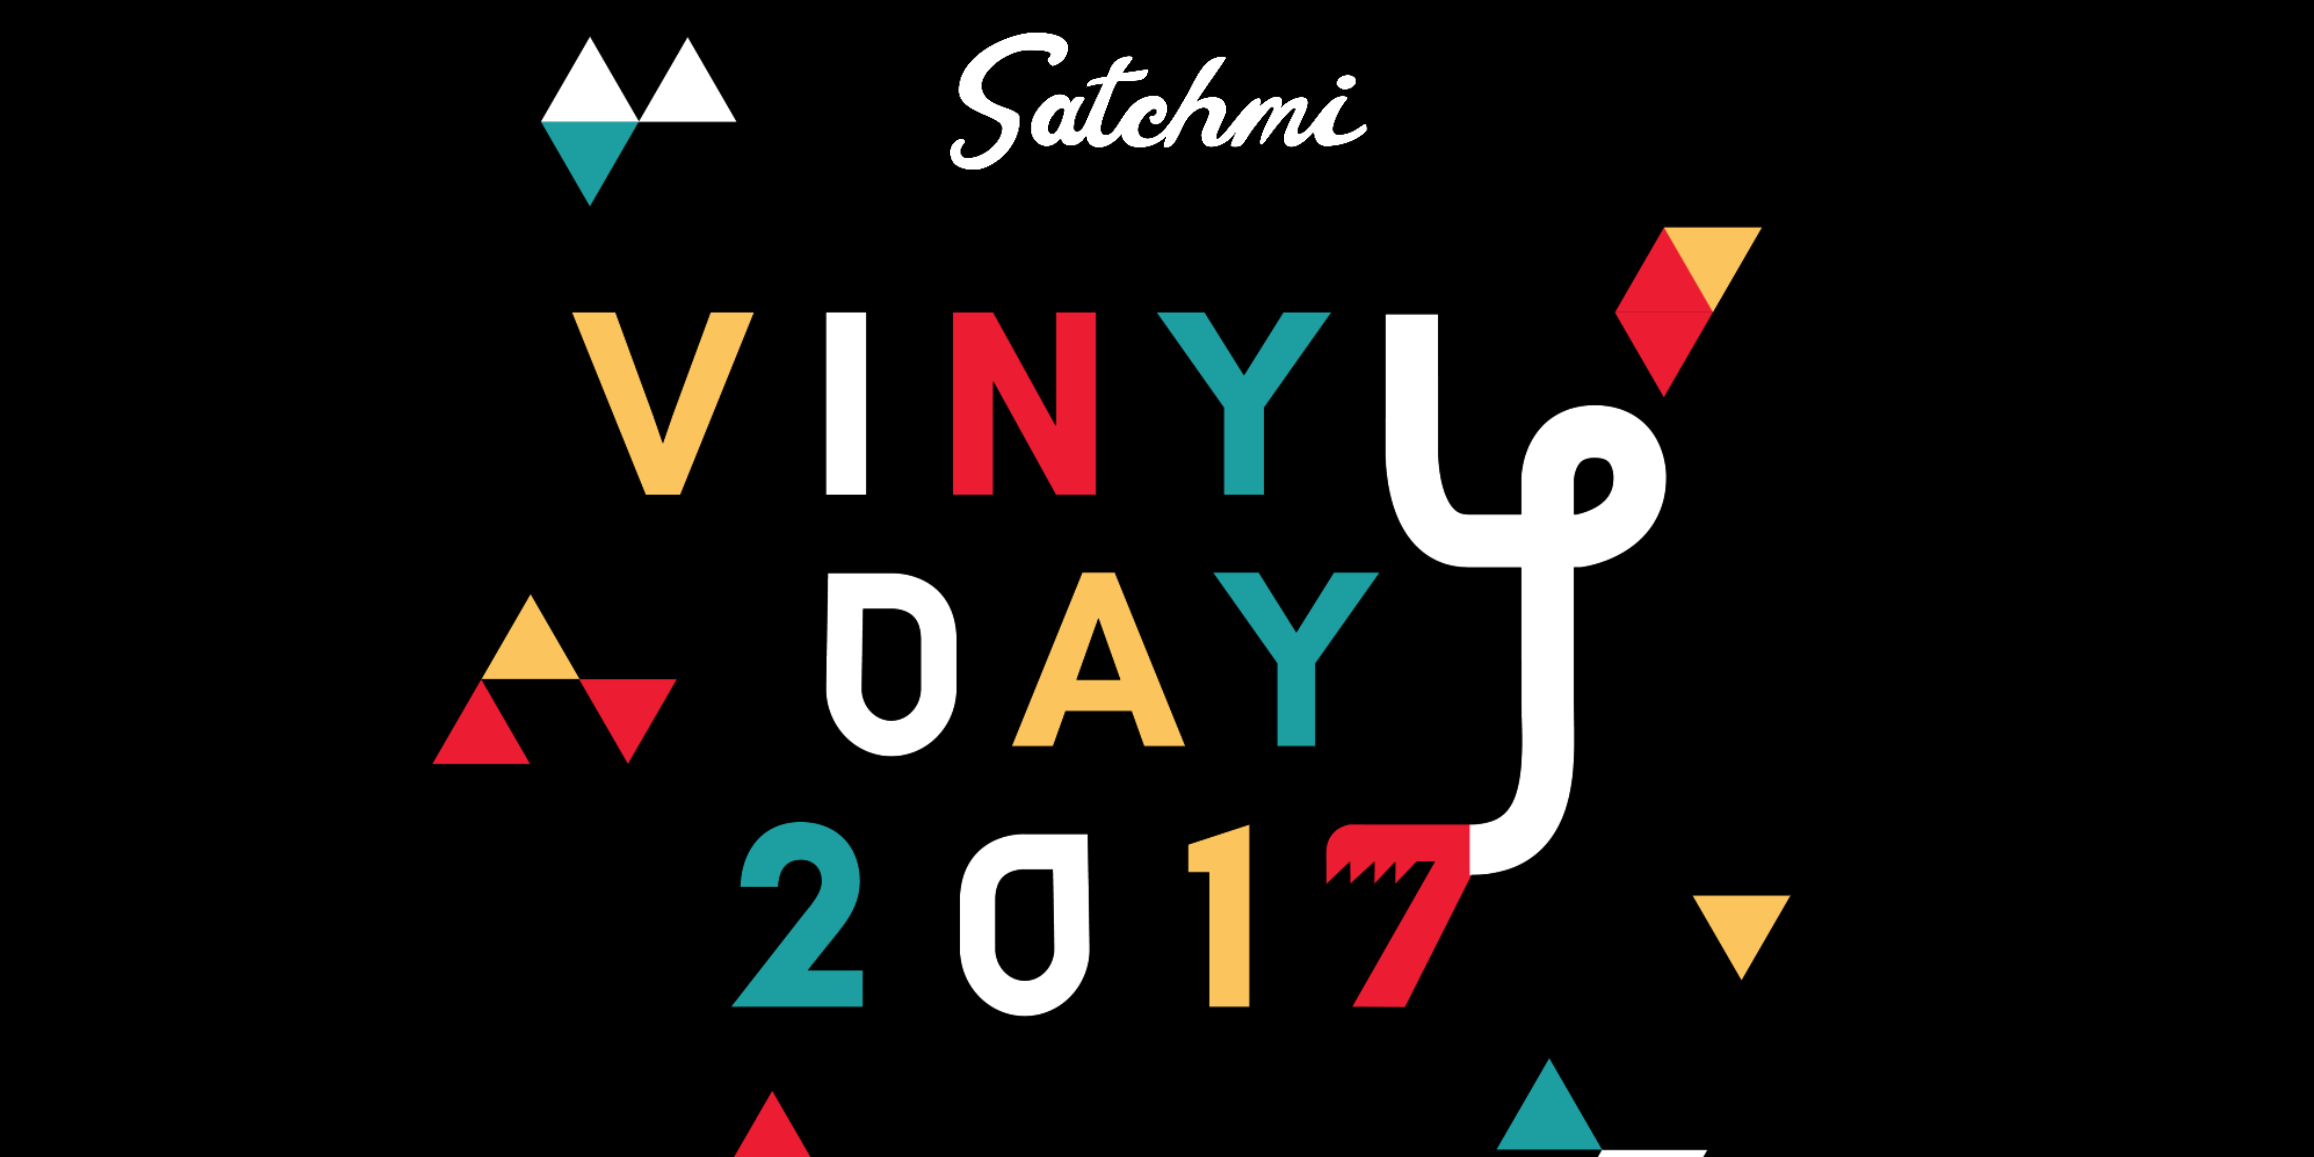 Satchmi Vinyl Day to celebrate its fifth year at Green Sun